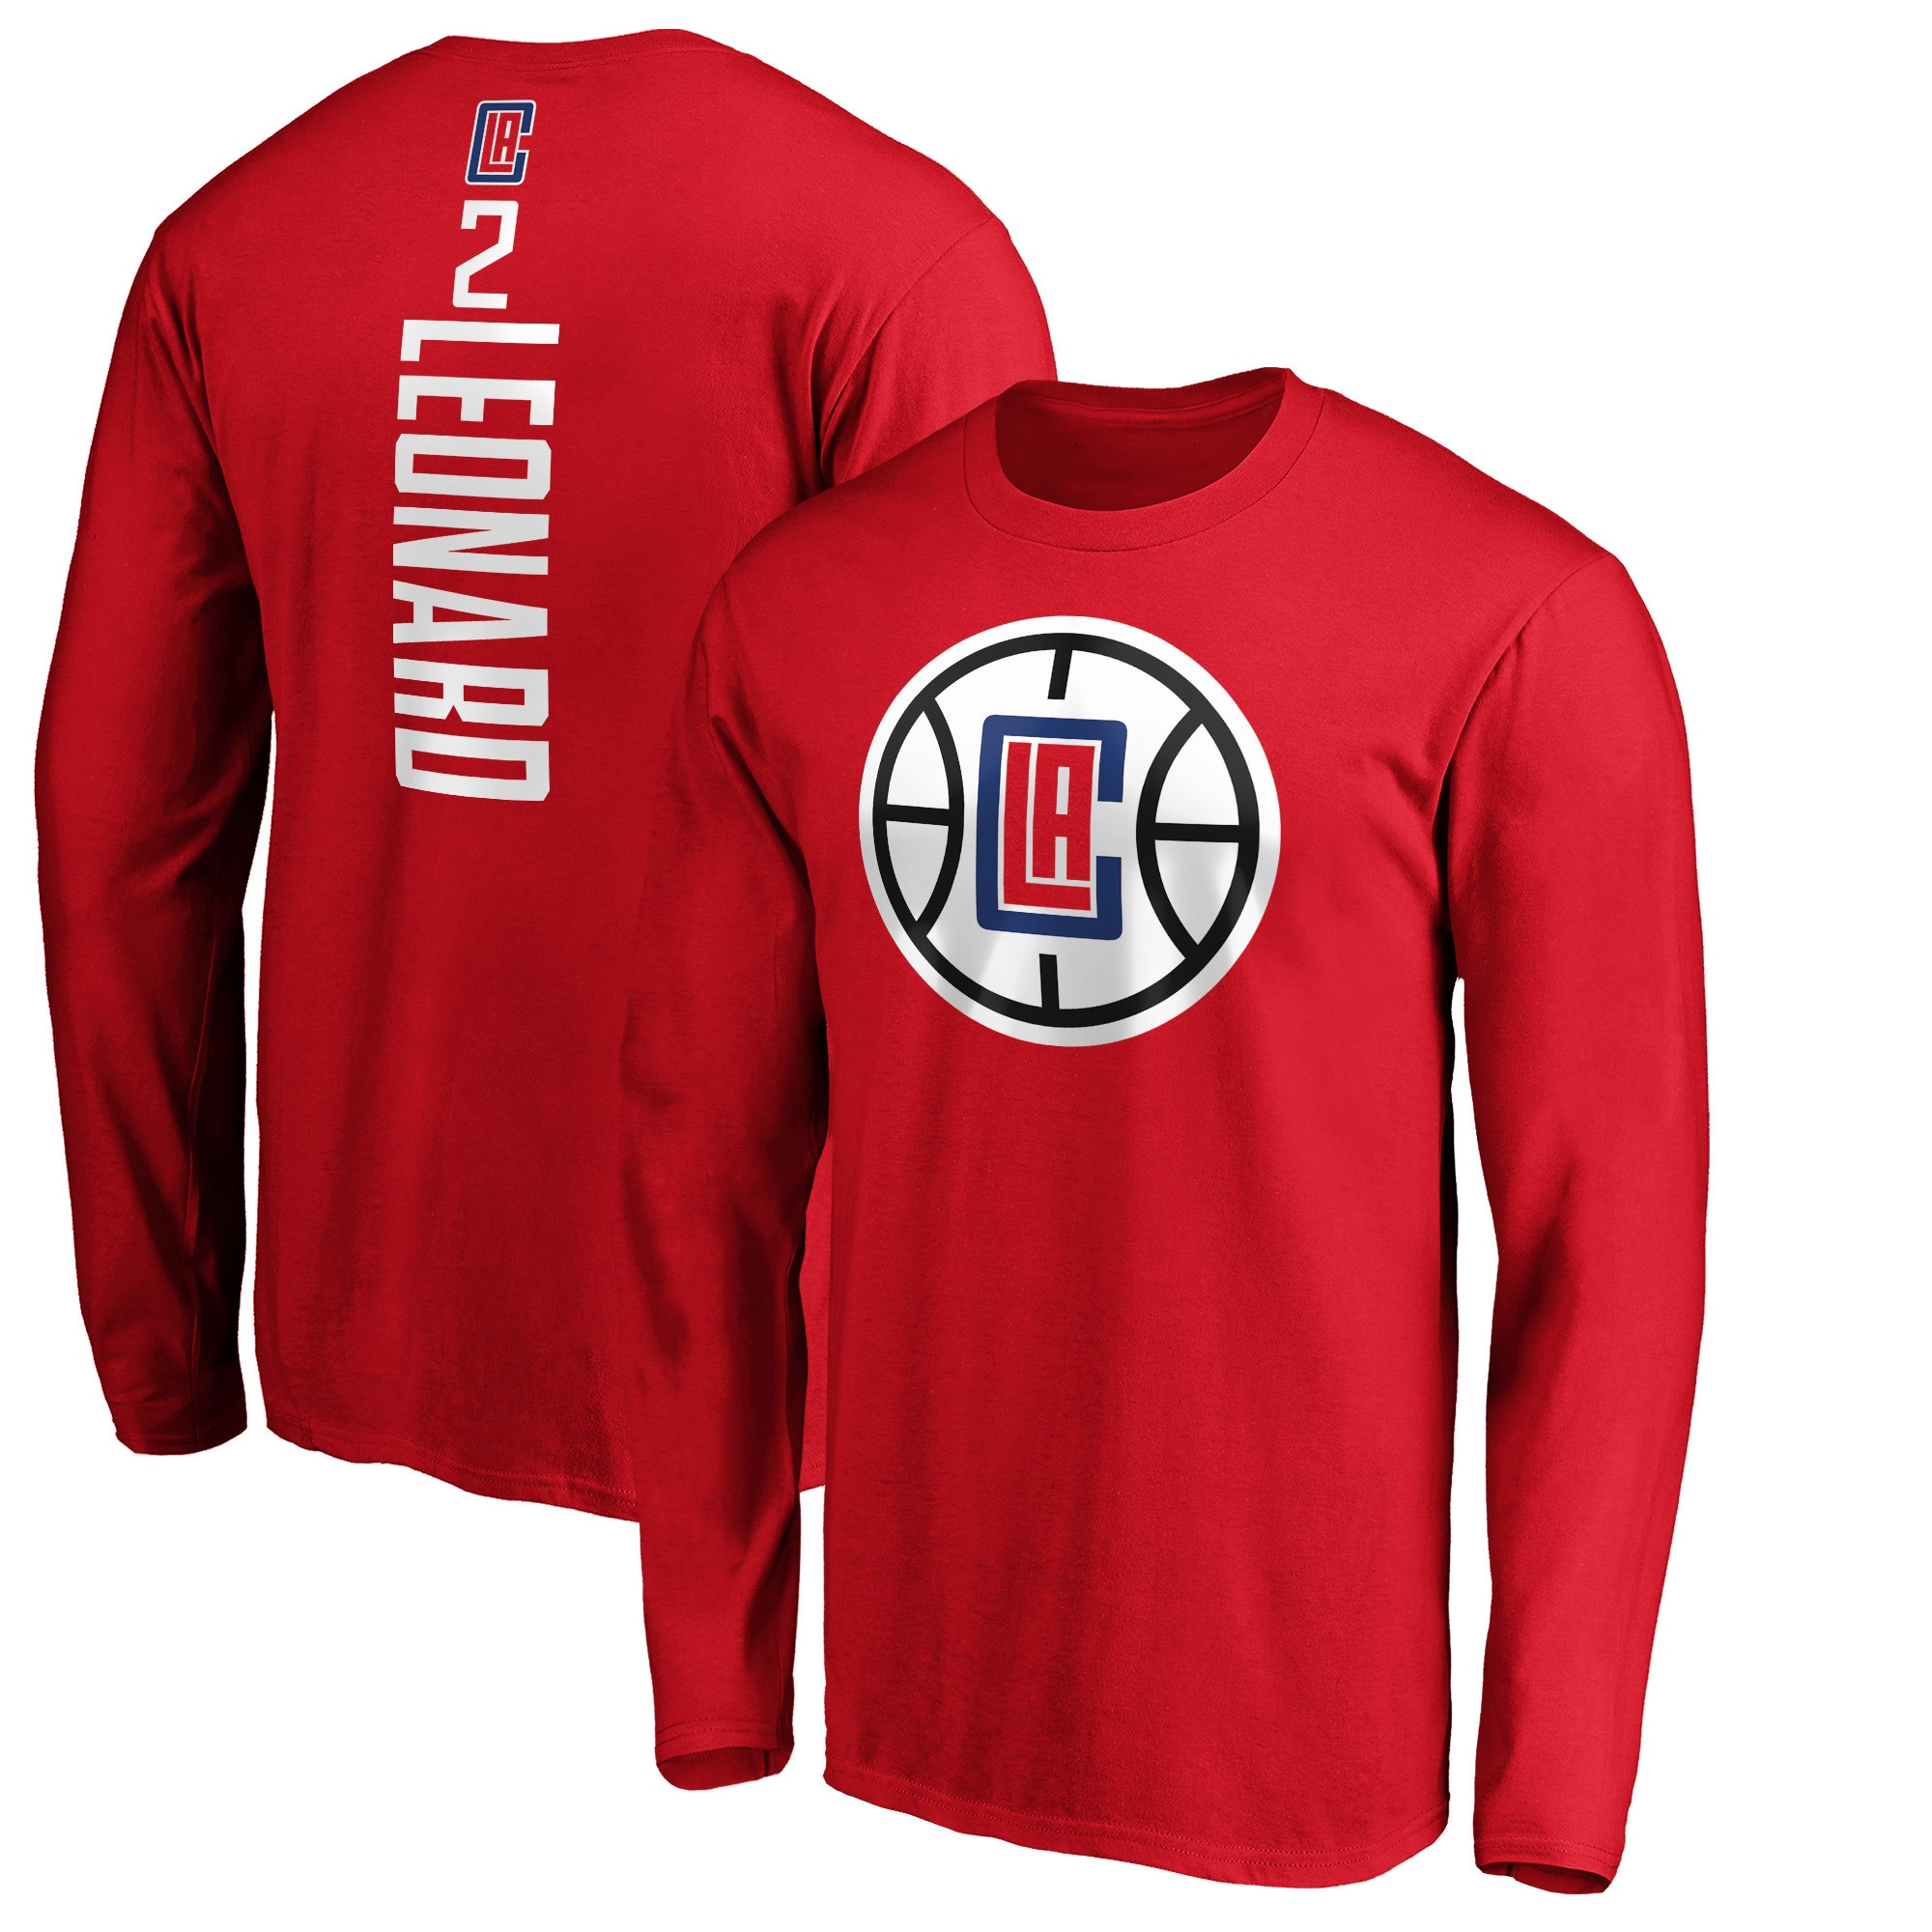 Kawhi Leonard LA Clippers Fanatics Branded Team Playmaker Name & Number Long Sleeve T-Shirt - Red